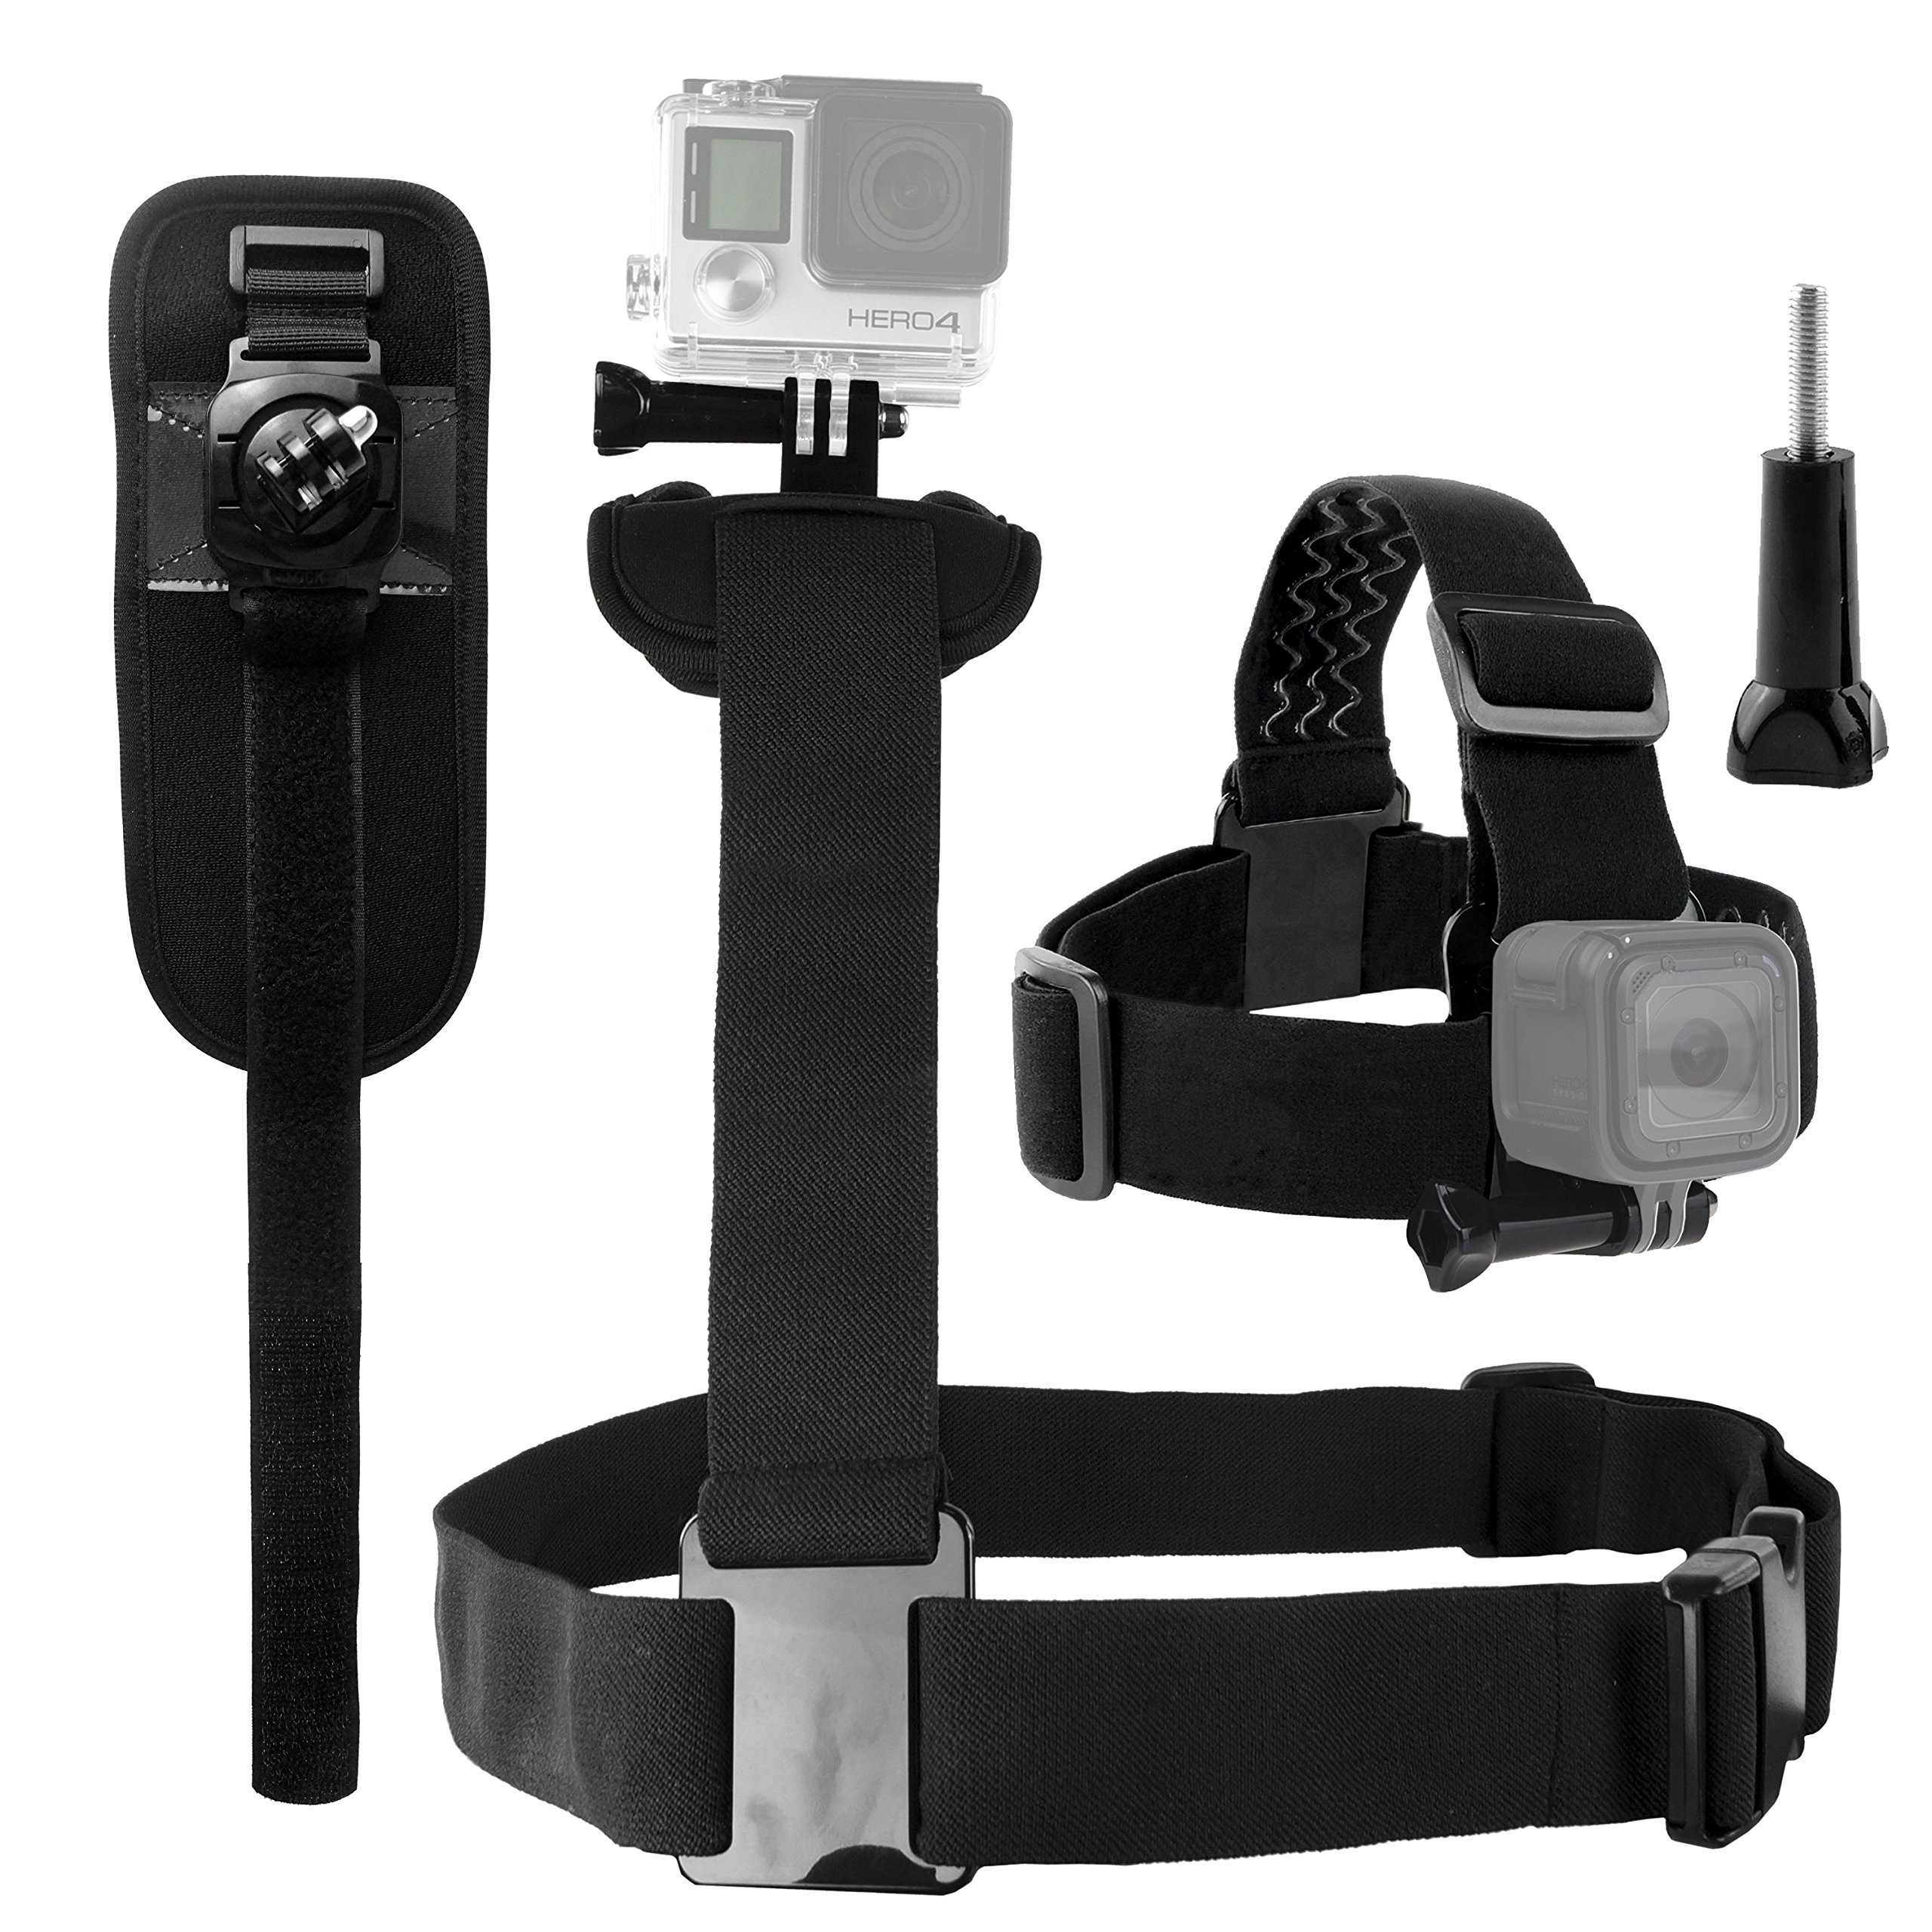 CamKix replacement Body Mount Bundle compatible with Gopro Hero 6, 5, Black, Session, Hero 4, Session, Black, Silver, Hero+ LCD, 3+, 3, 2, 1 – Shoulder Harness/Head Strap/Rotating Wrist Mount